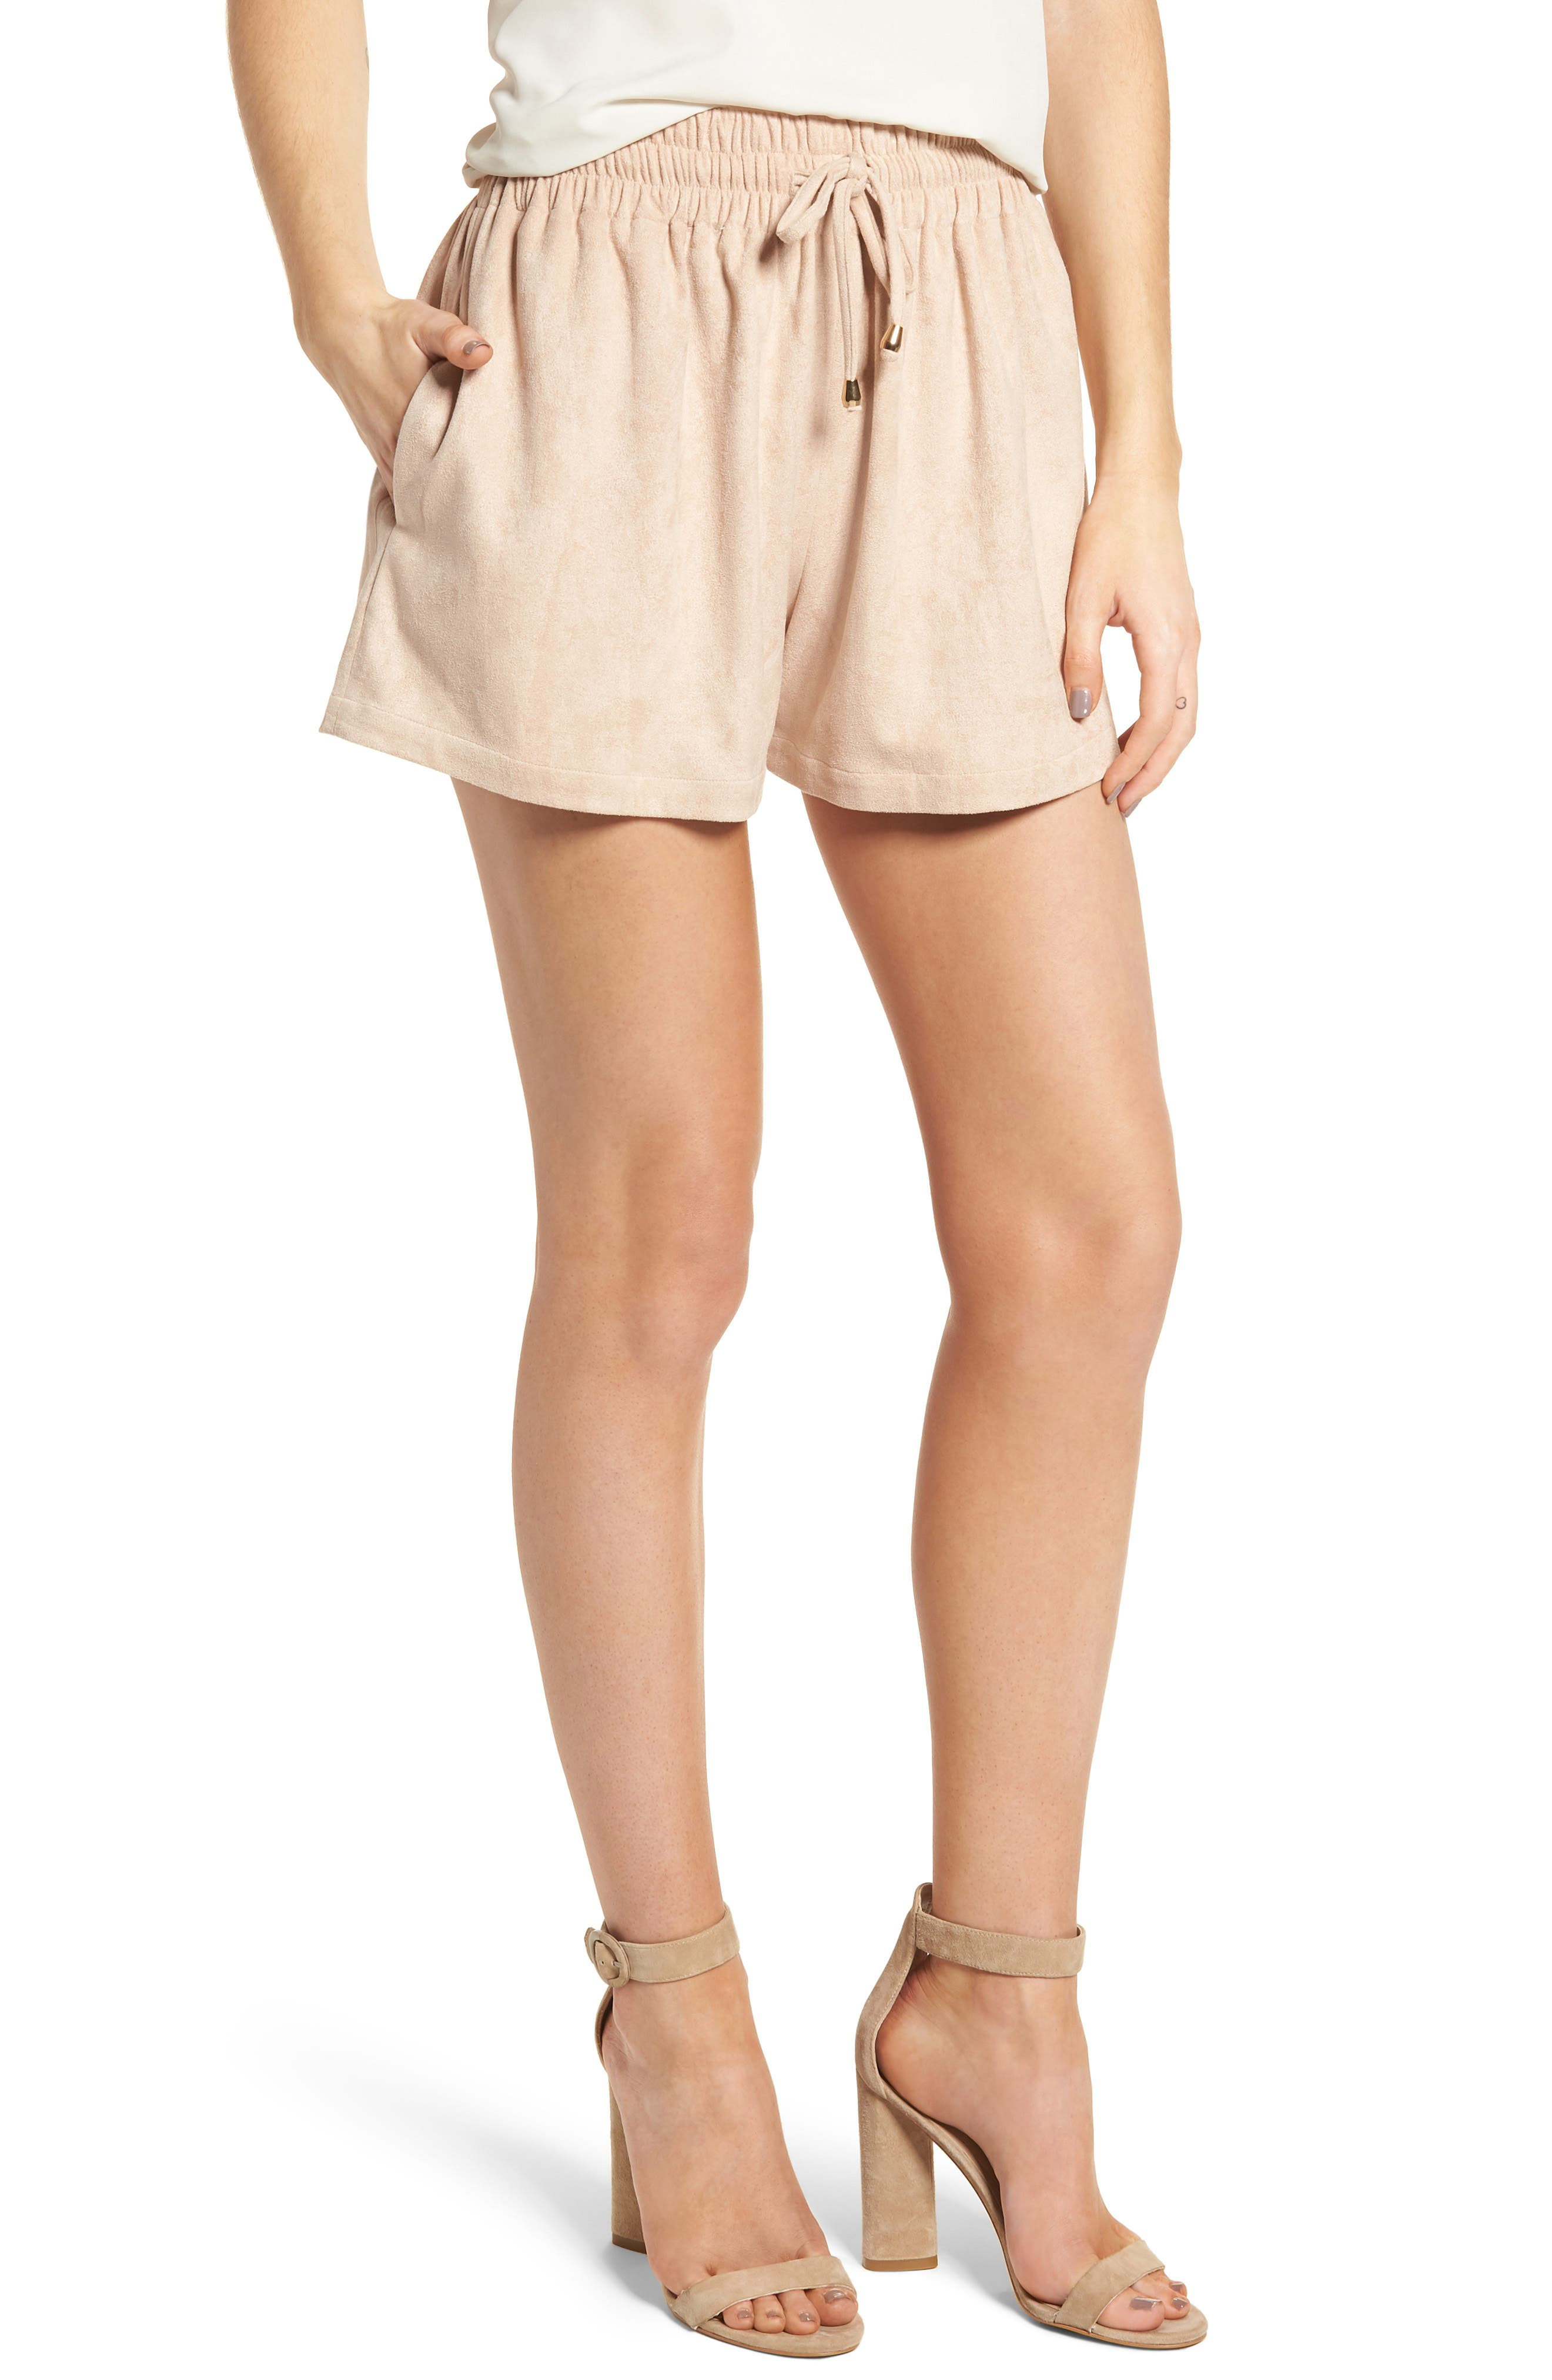 Bishop + Young Faux Suede Shorts,                             Main thumbnail 1, color,                             650